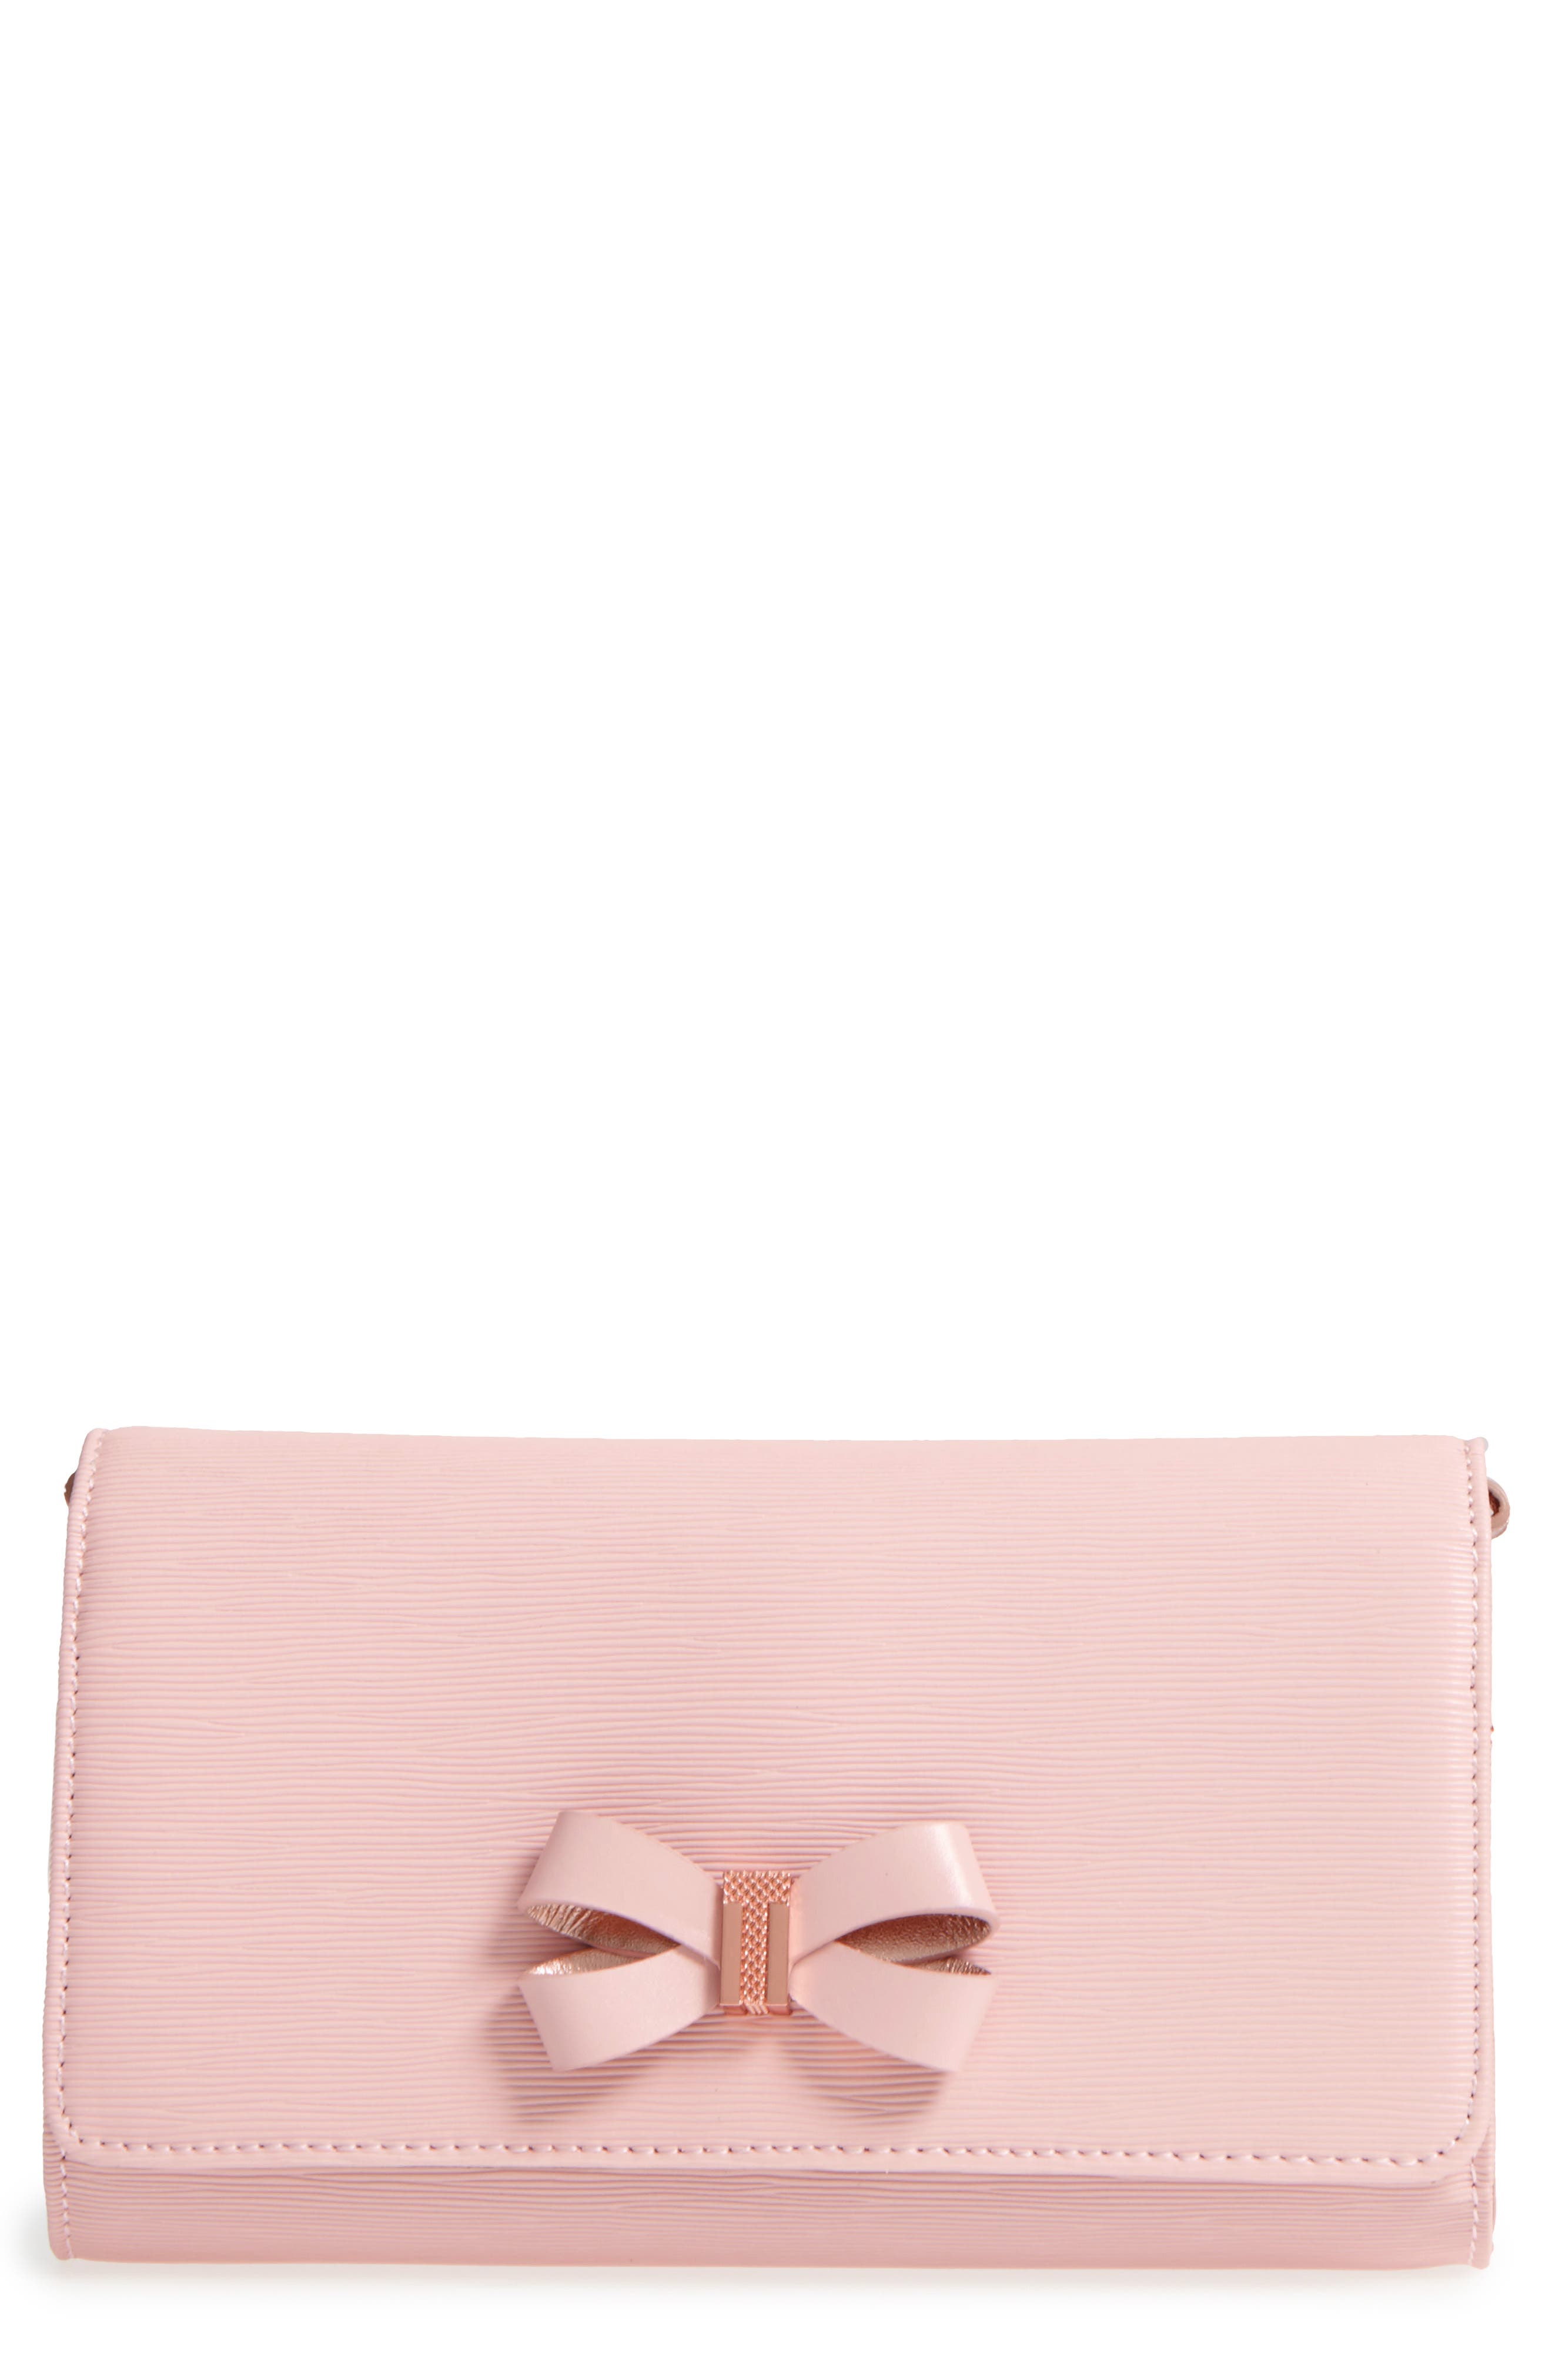 Main Image - Ted Baker London Melisia Bow Leather Mantinee Wallet on a Chain